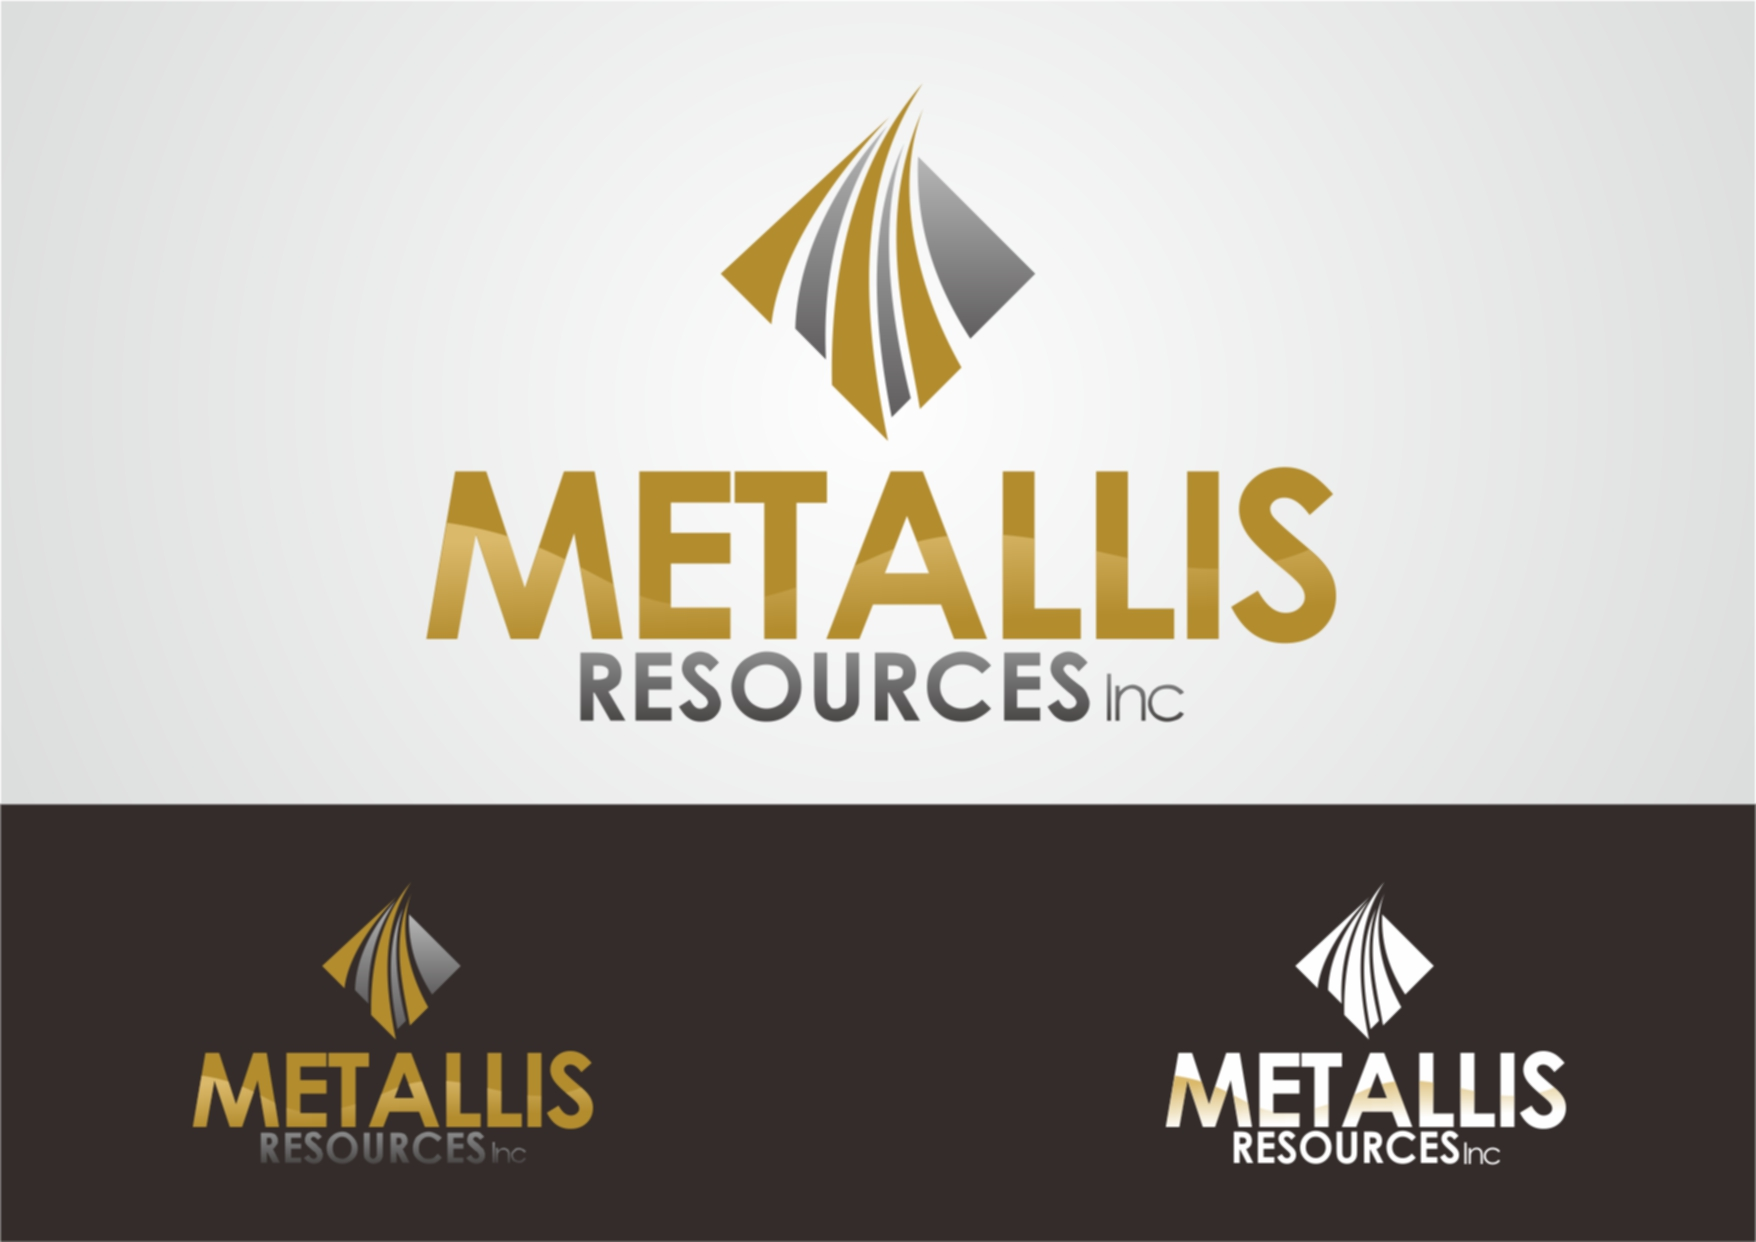 Logo Design by Private User - Entry No. 107 in the Logo Design Contest Metallis Resources Inc Logo Design.